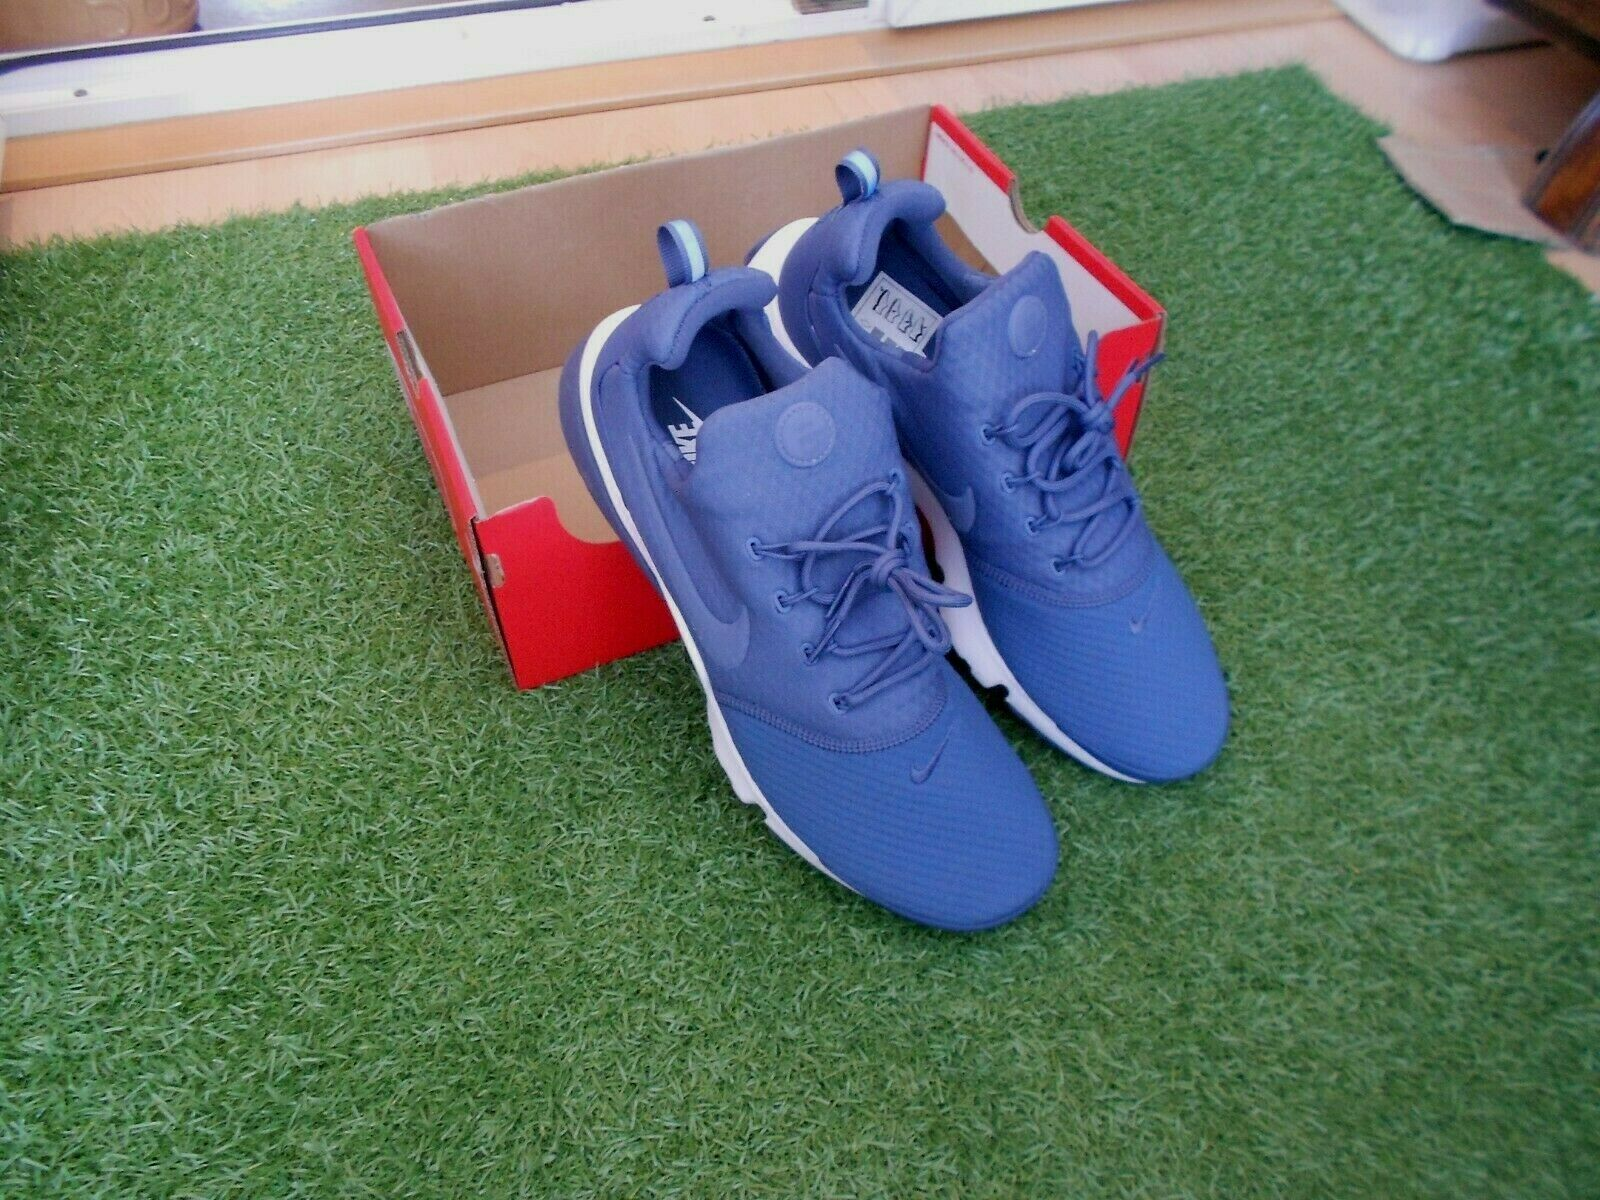 BNWOB NIKE PRESTO FLY TRAINERS UK SIZE 13 - DIFFUSED blueE